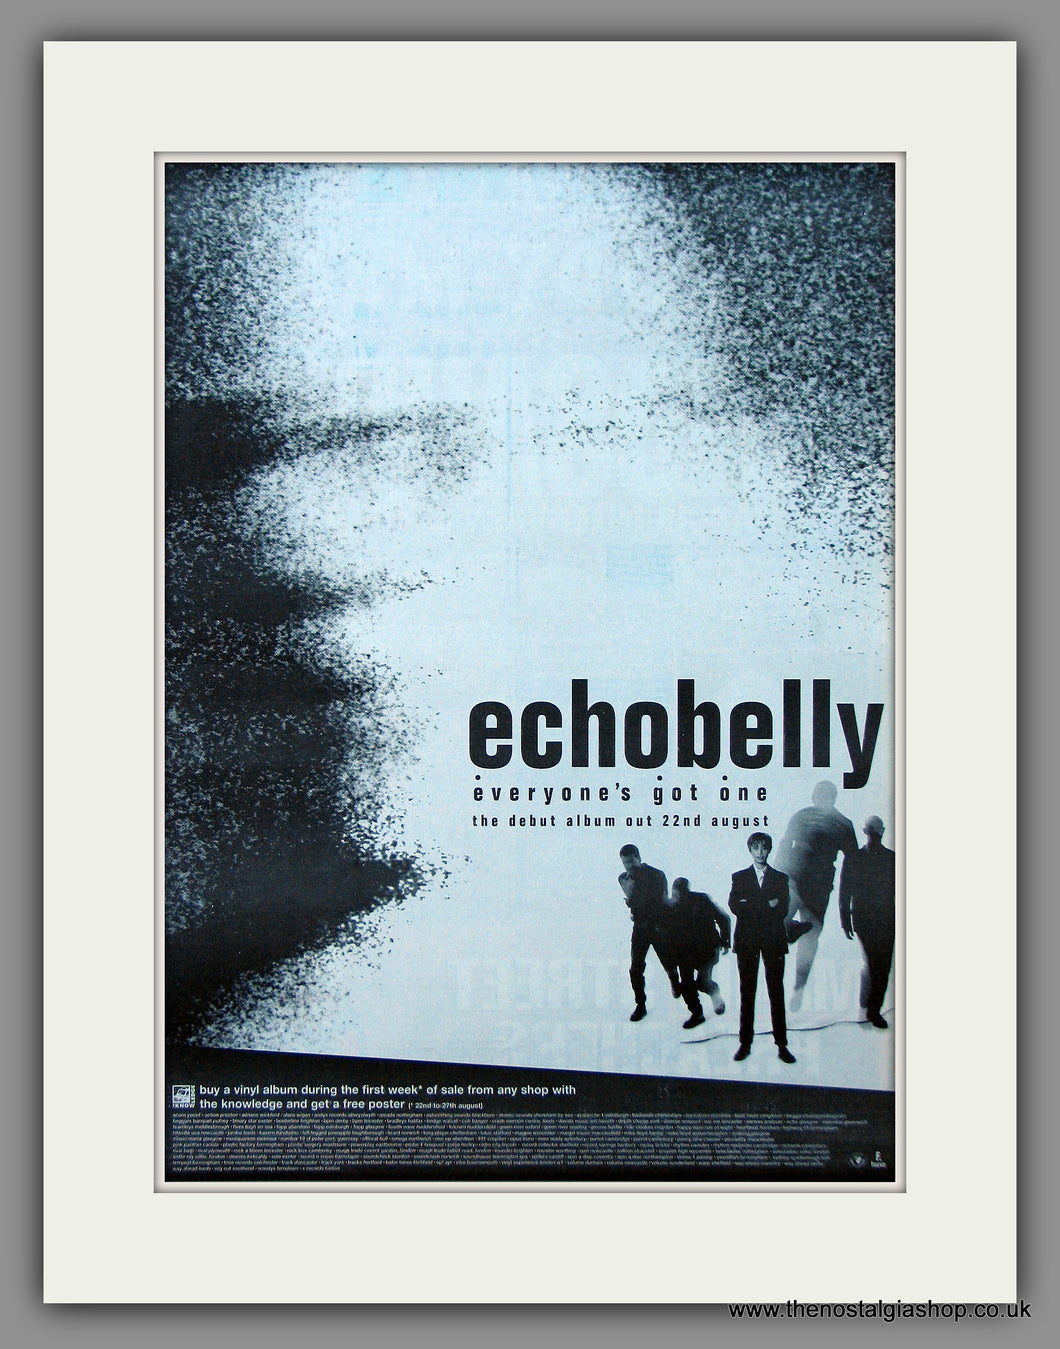 Echobelly - Everyone's Got One.  Original Vintage Advert 1994 (ref AD10744)